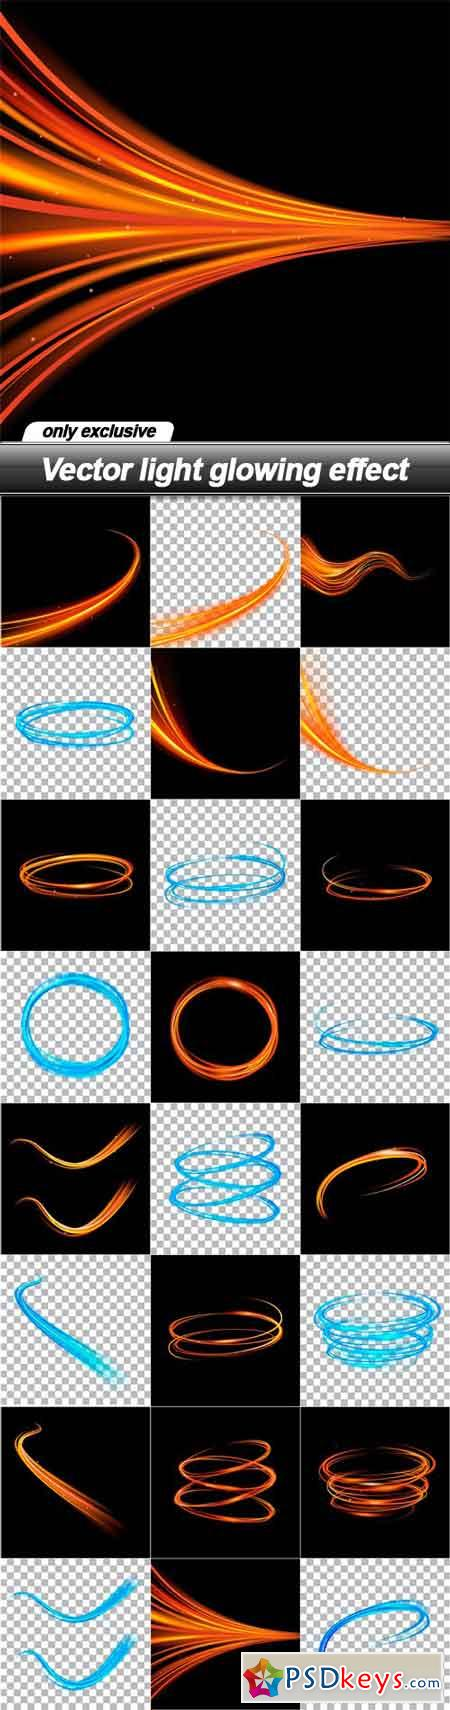 Vector light glowing effect - 24 EPS